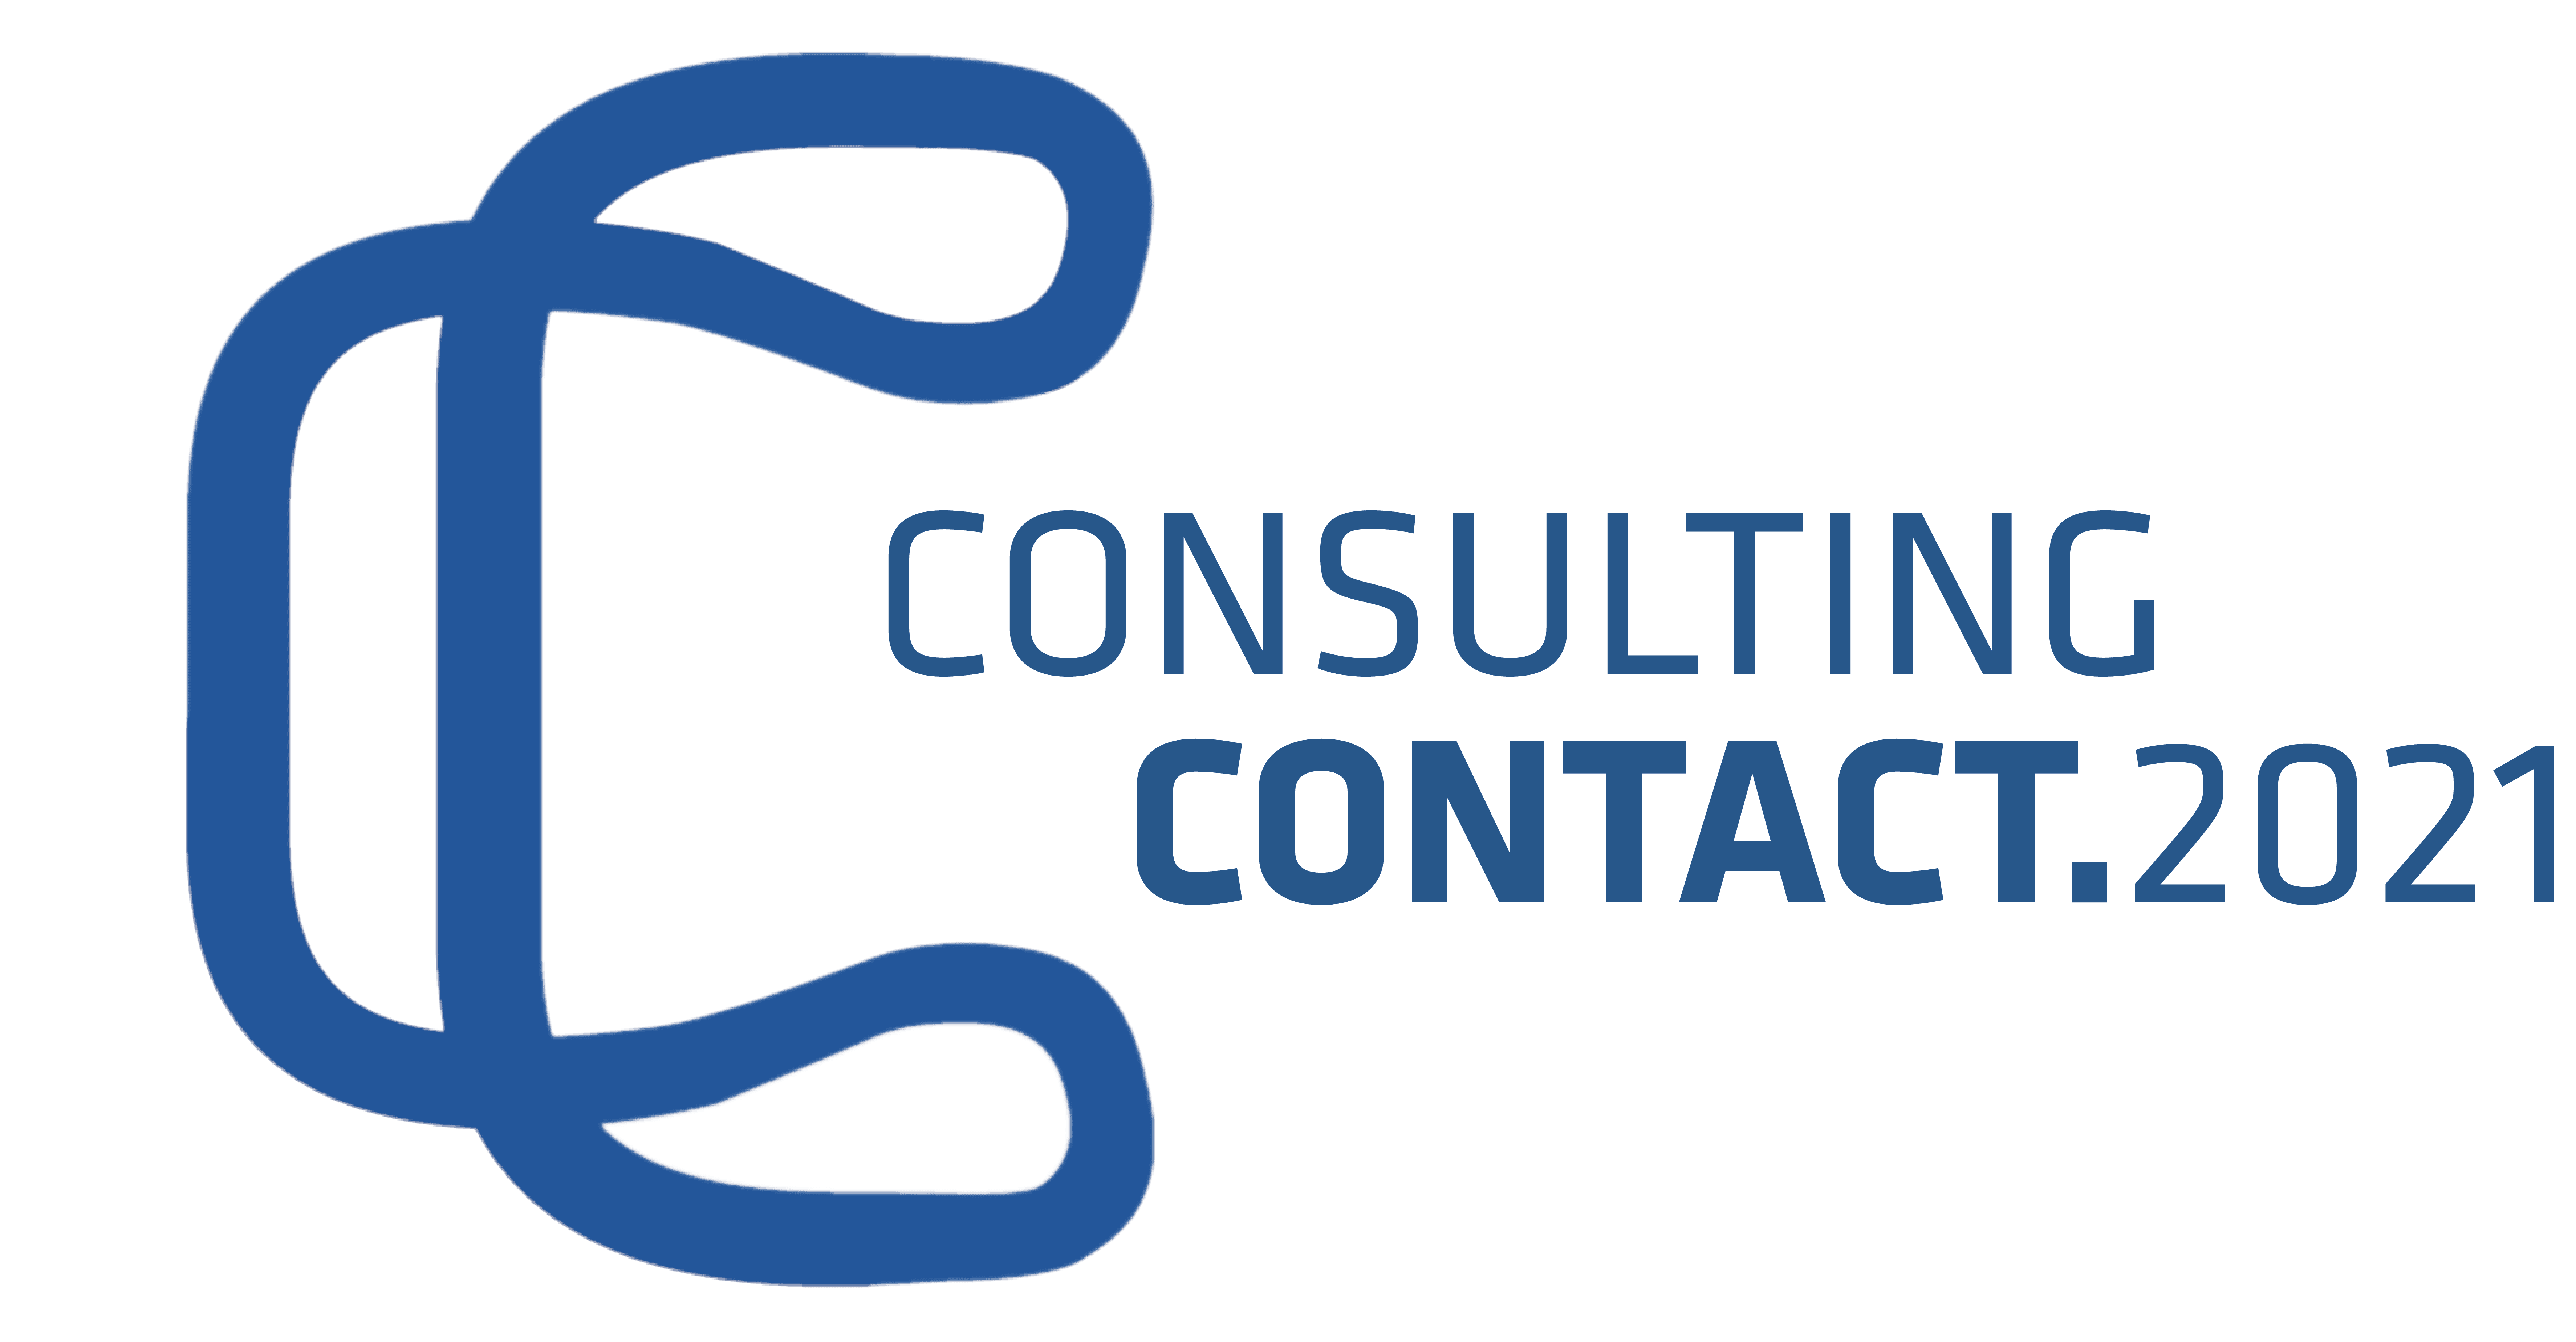 consultingcontact.2021